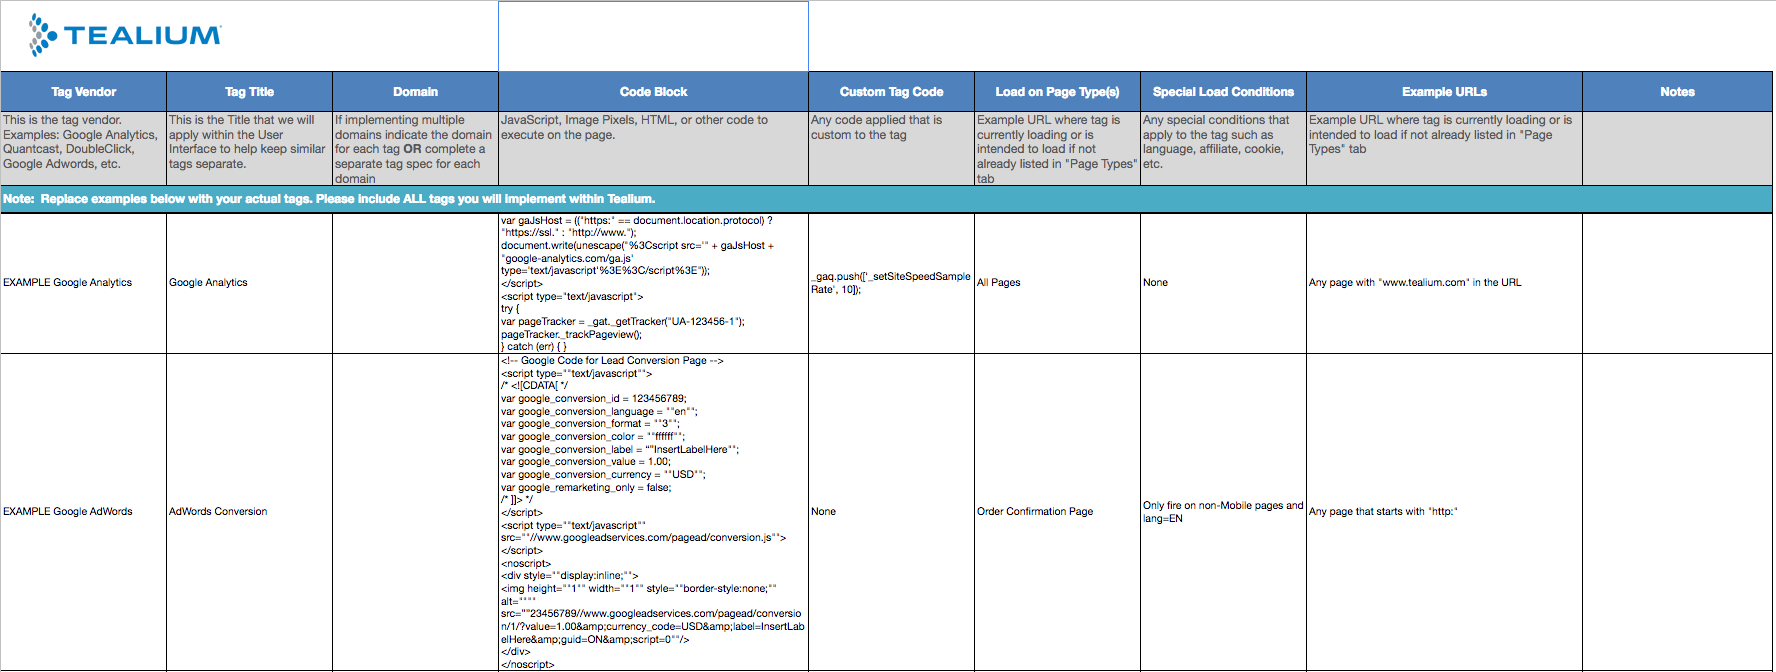 tag-specifications-spreadsheet.png